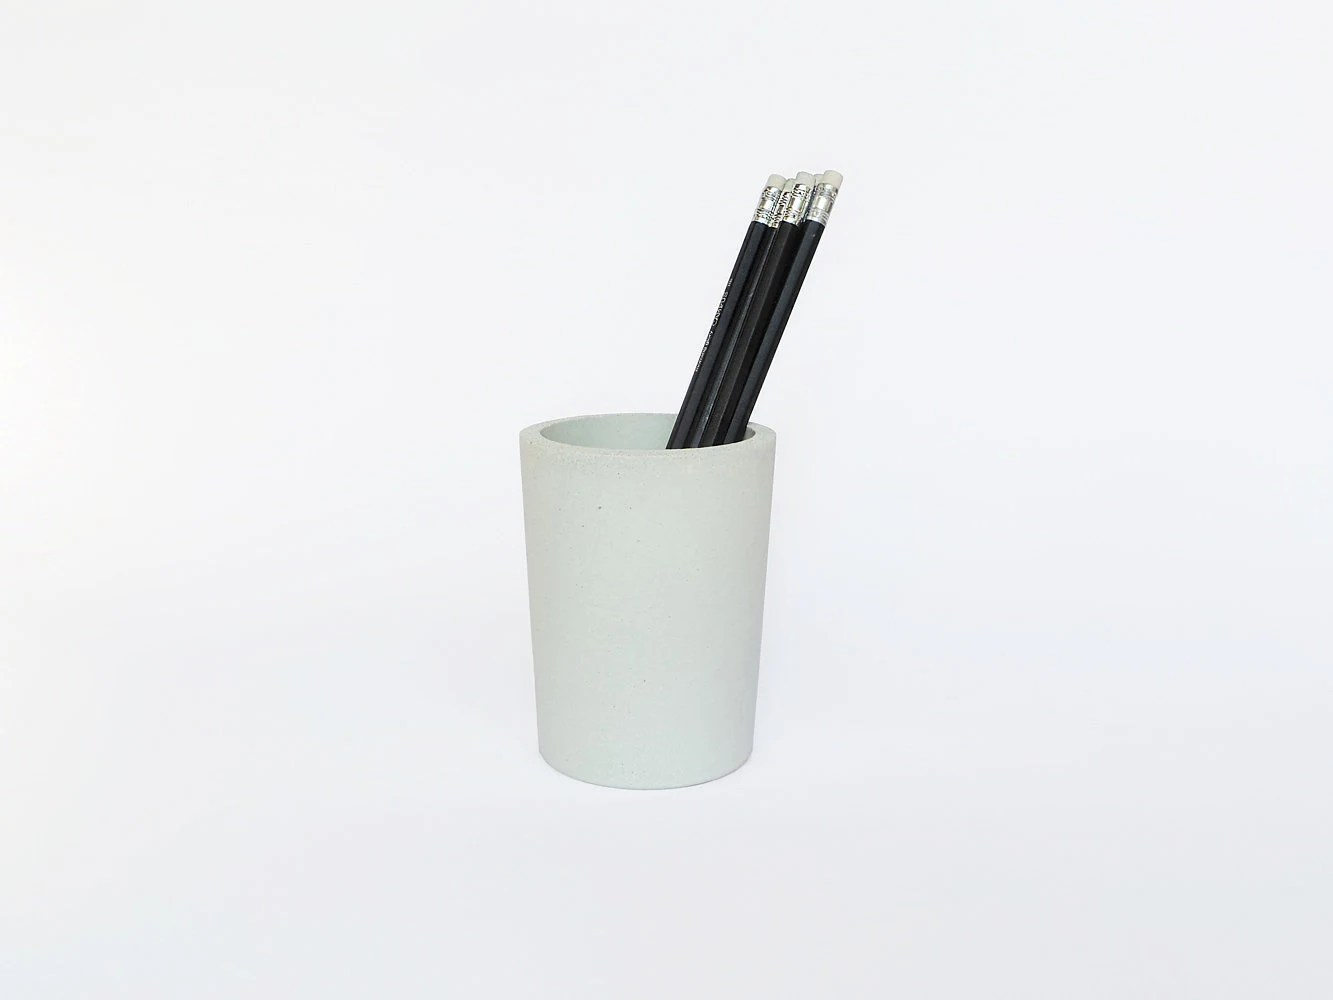 Pen Cup Holder White Concrete Pencil Holder Pencil Cup Pencil Holder